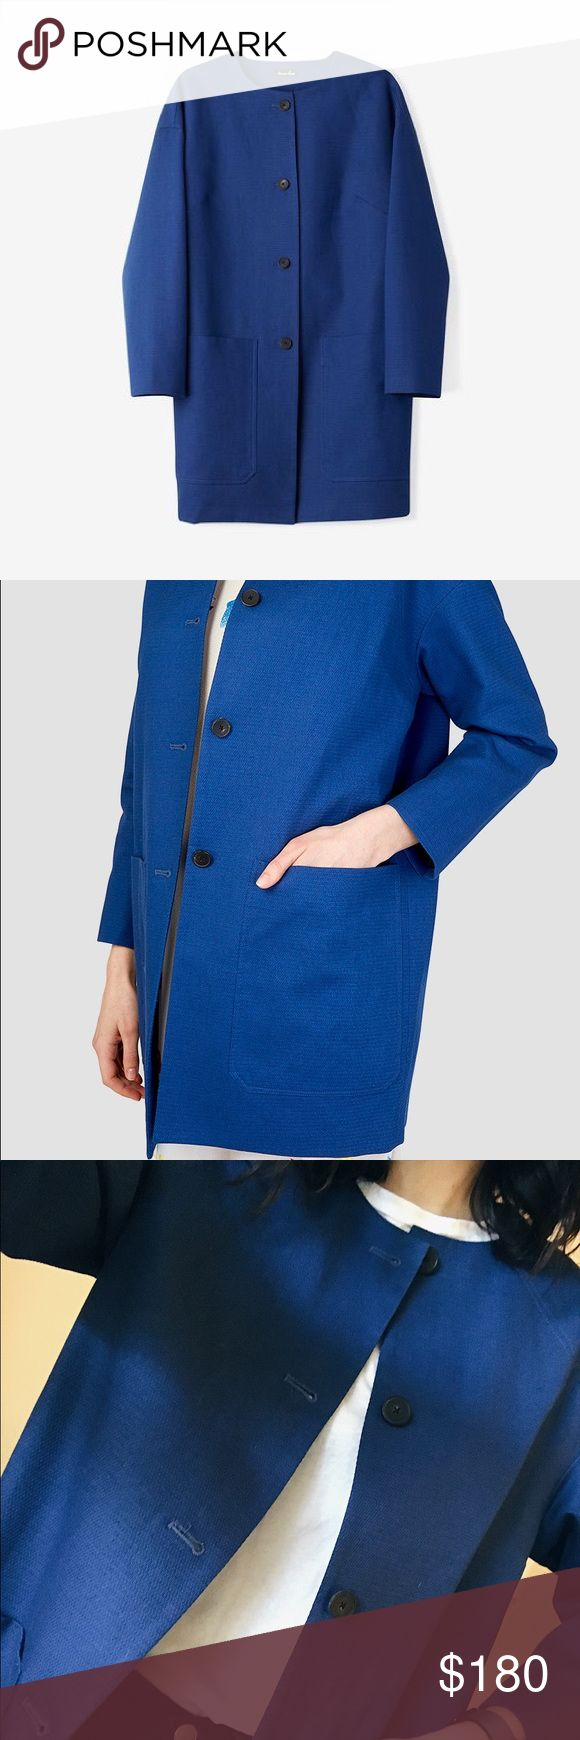 Steven Alan factory Jacket Steven Alan factory jacket in NEW condition. Brand new without tags!! Light duster coat with front four button closure, deep pockets, 3/4 length sleeves. Lightweight and fits structured. Love the color and reminds me of Bill Cunningham 💙💙💙 Steven Alan Jackets & Coats